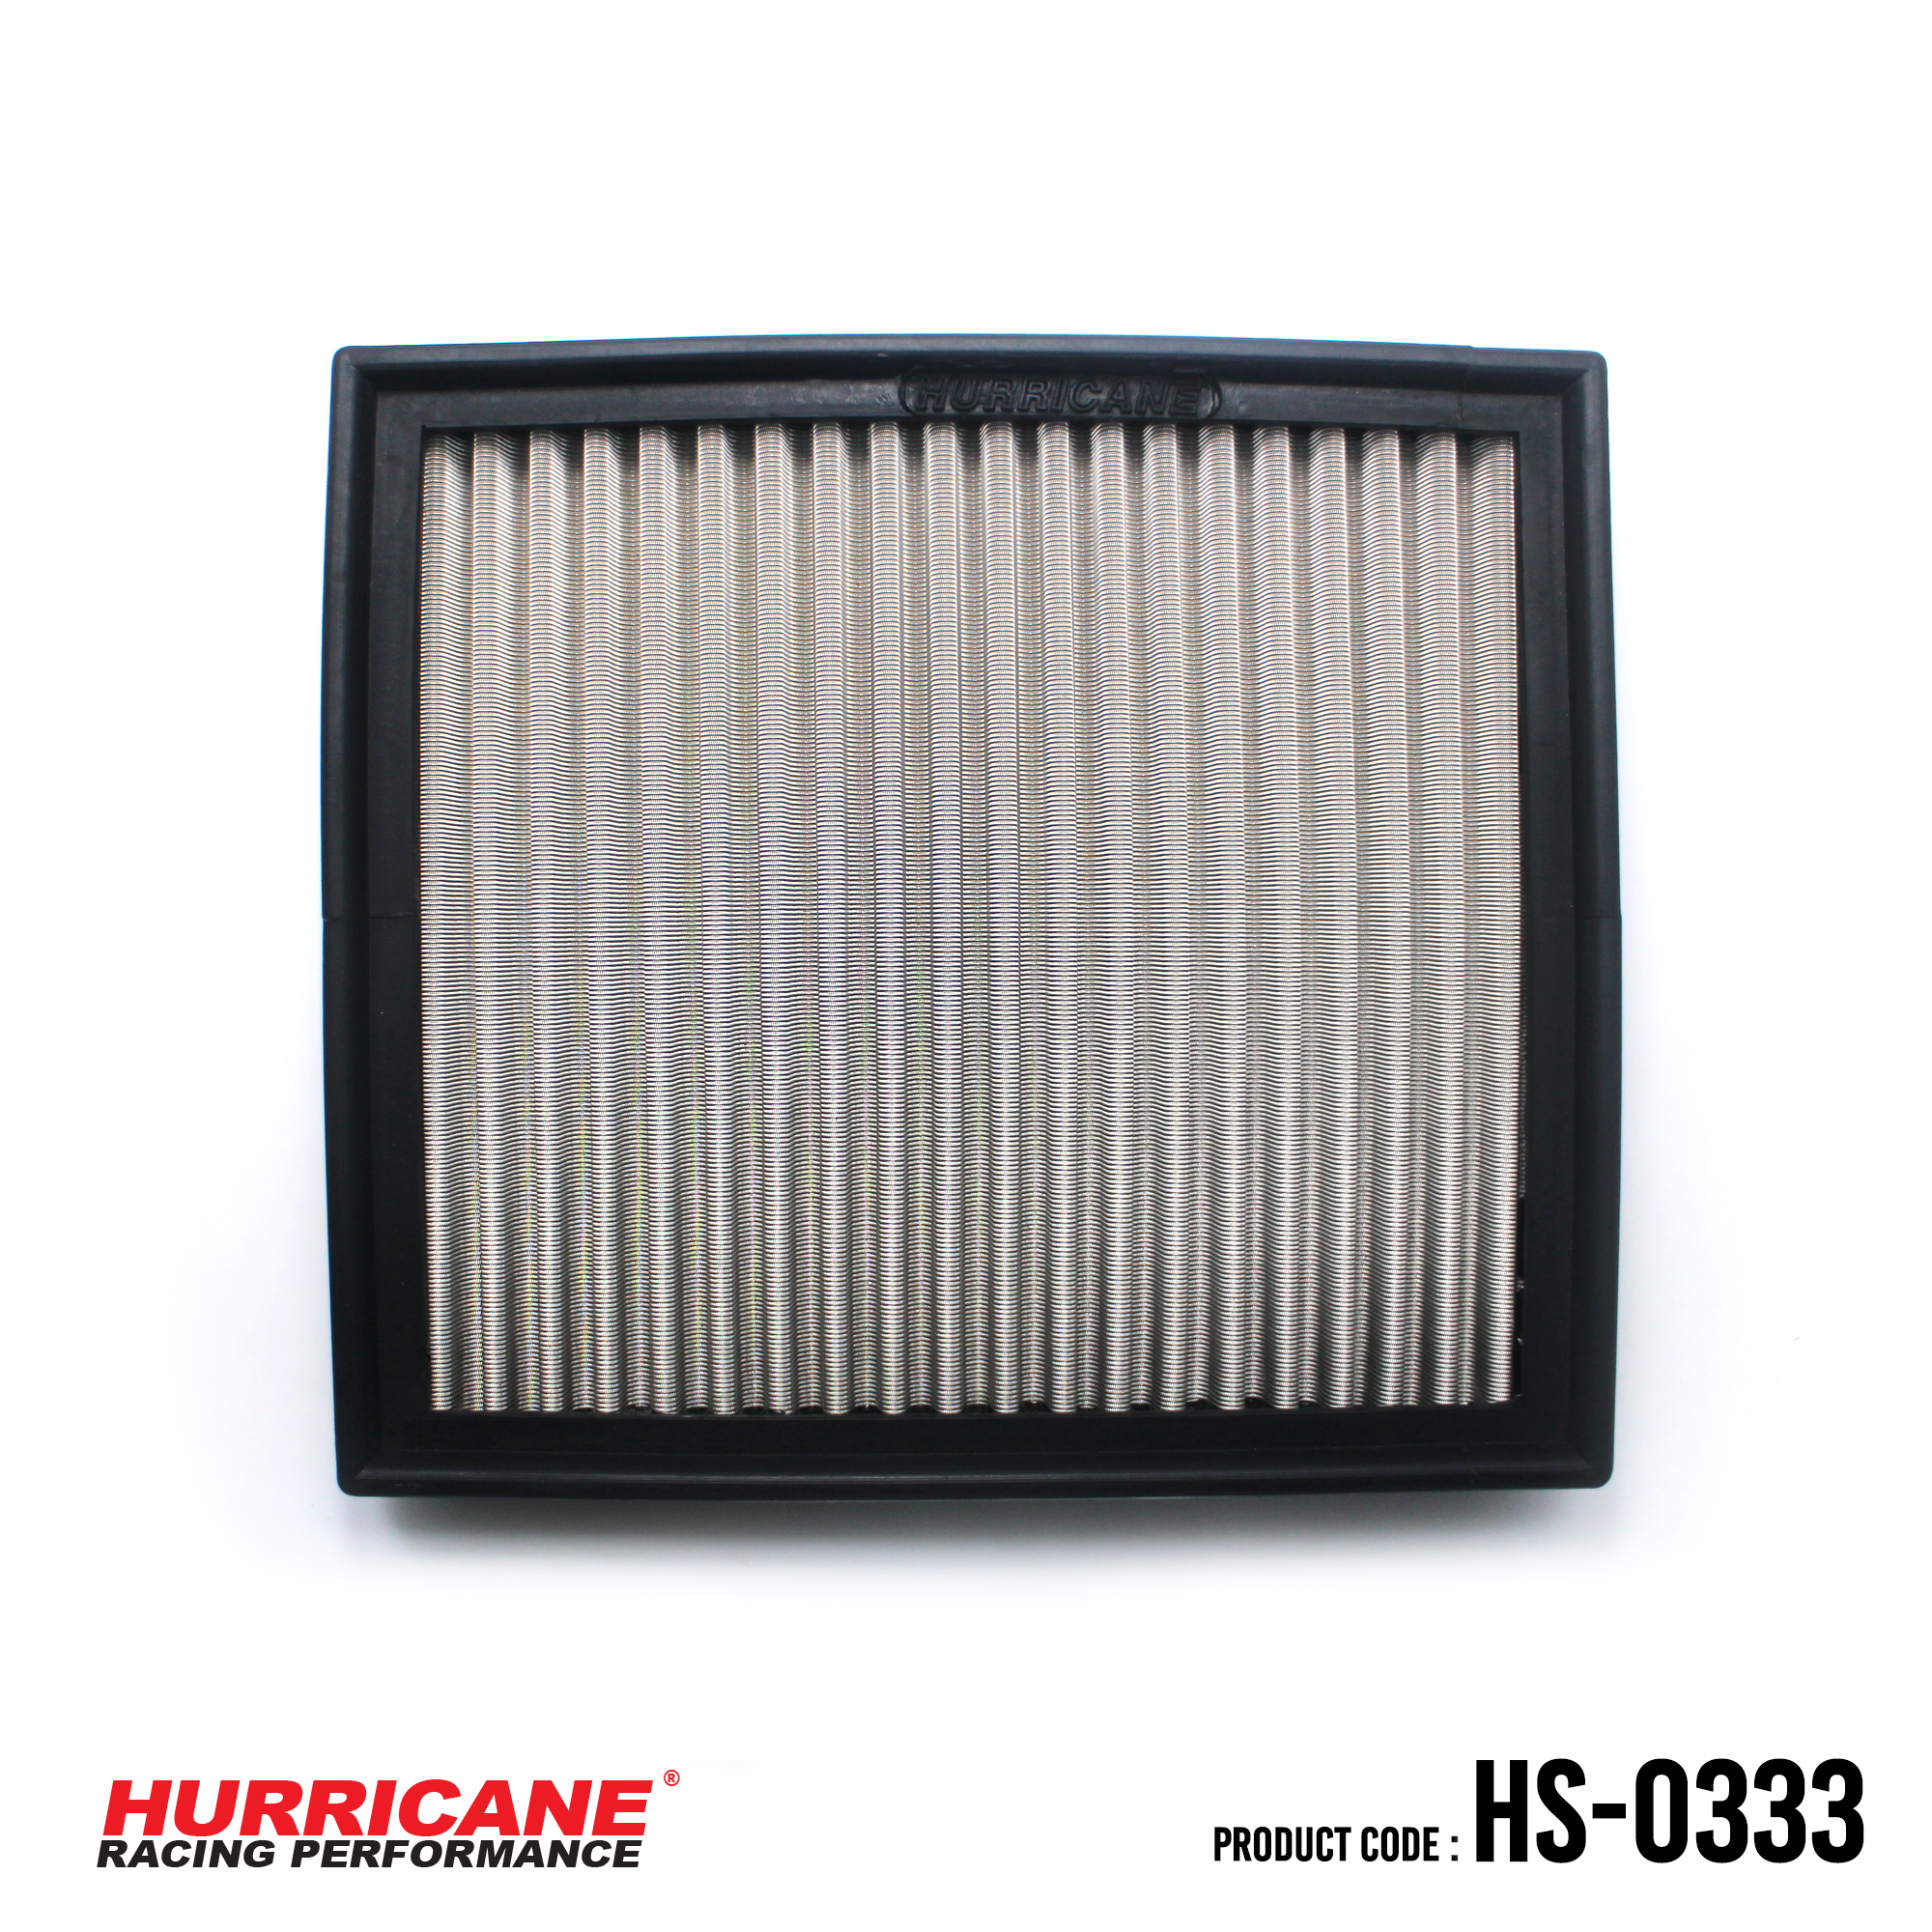 HURRICANE STAINLESS STEEL AIR FILTER FOR HS-0333 BMW